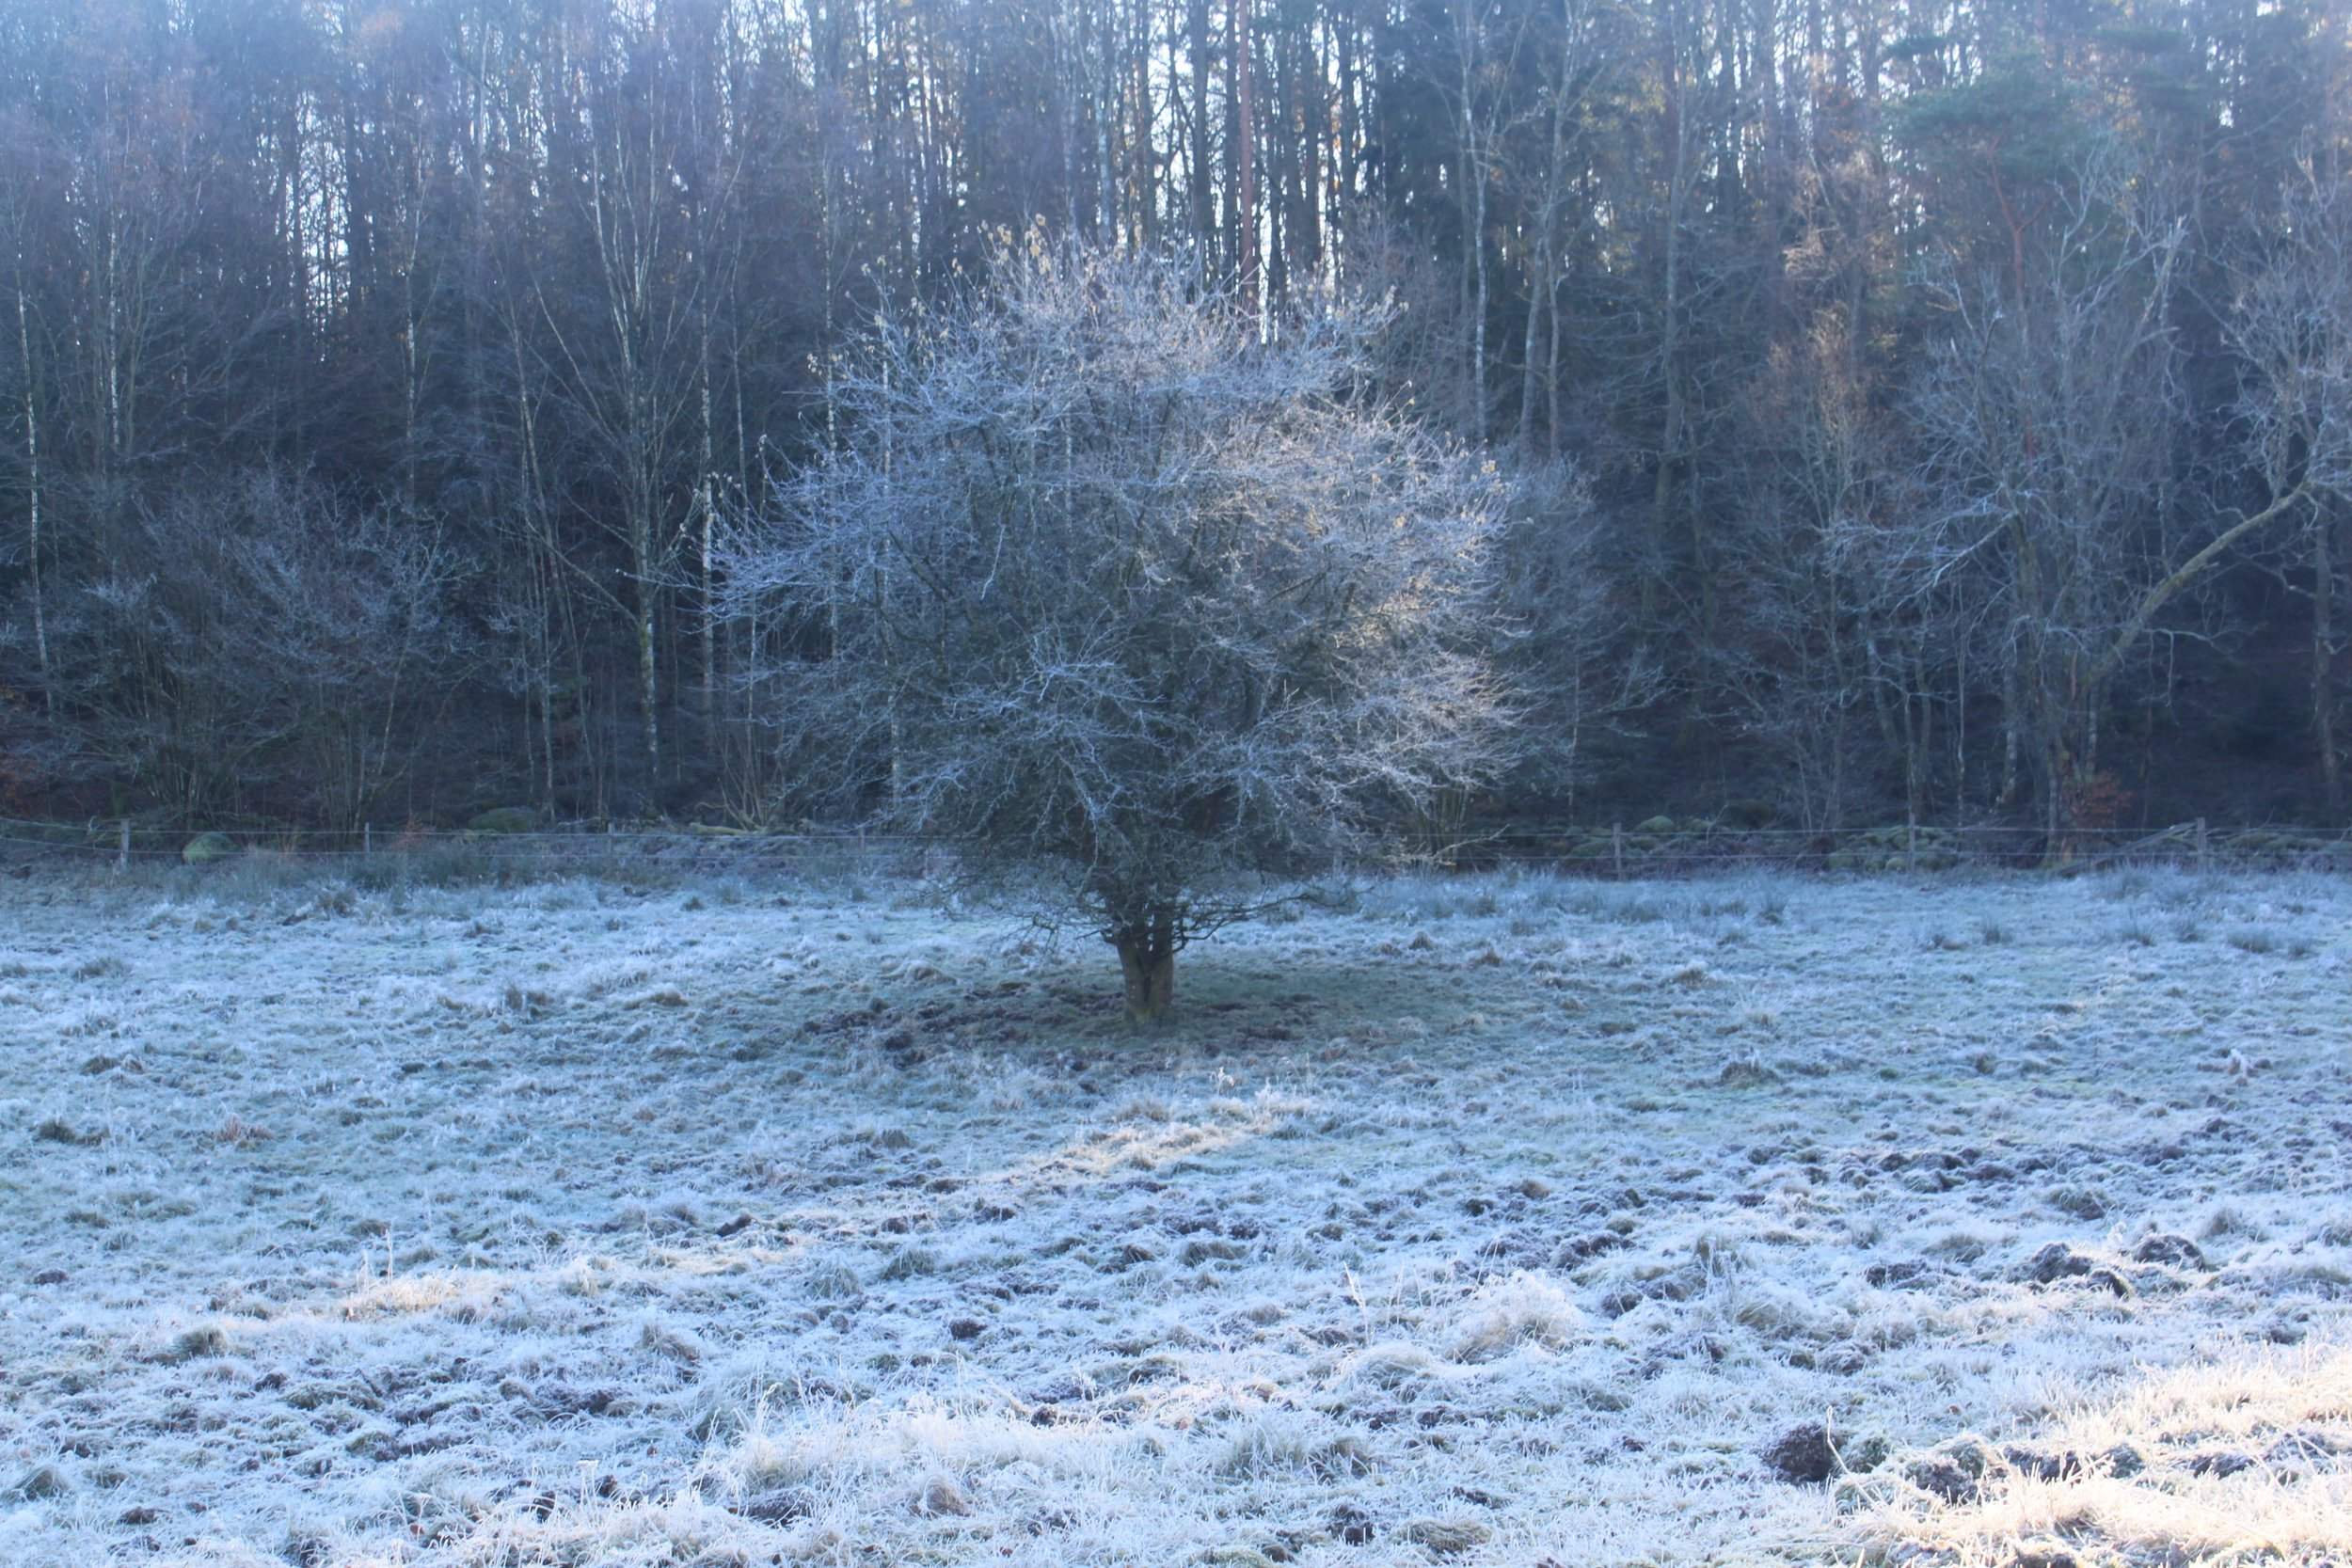 When I was little, my grandma had a picture of a tree in four seasons. 1/4 of its branches showed summer leaves, 1/4 spring flowers, 1/4 fall color and the other was bare with a coating of frost. The frosty one was her favorite.